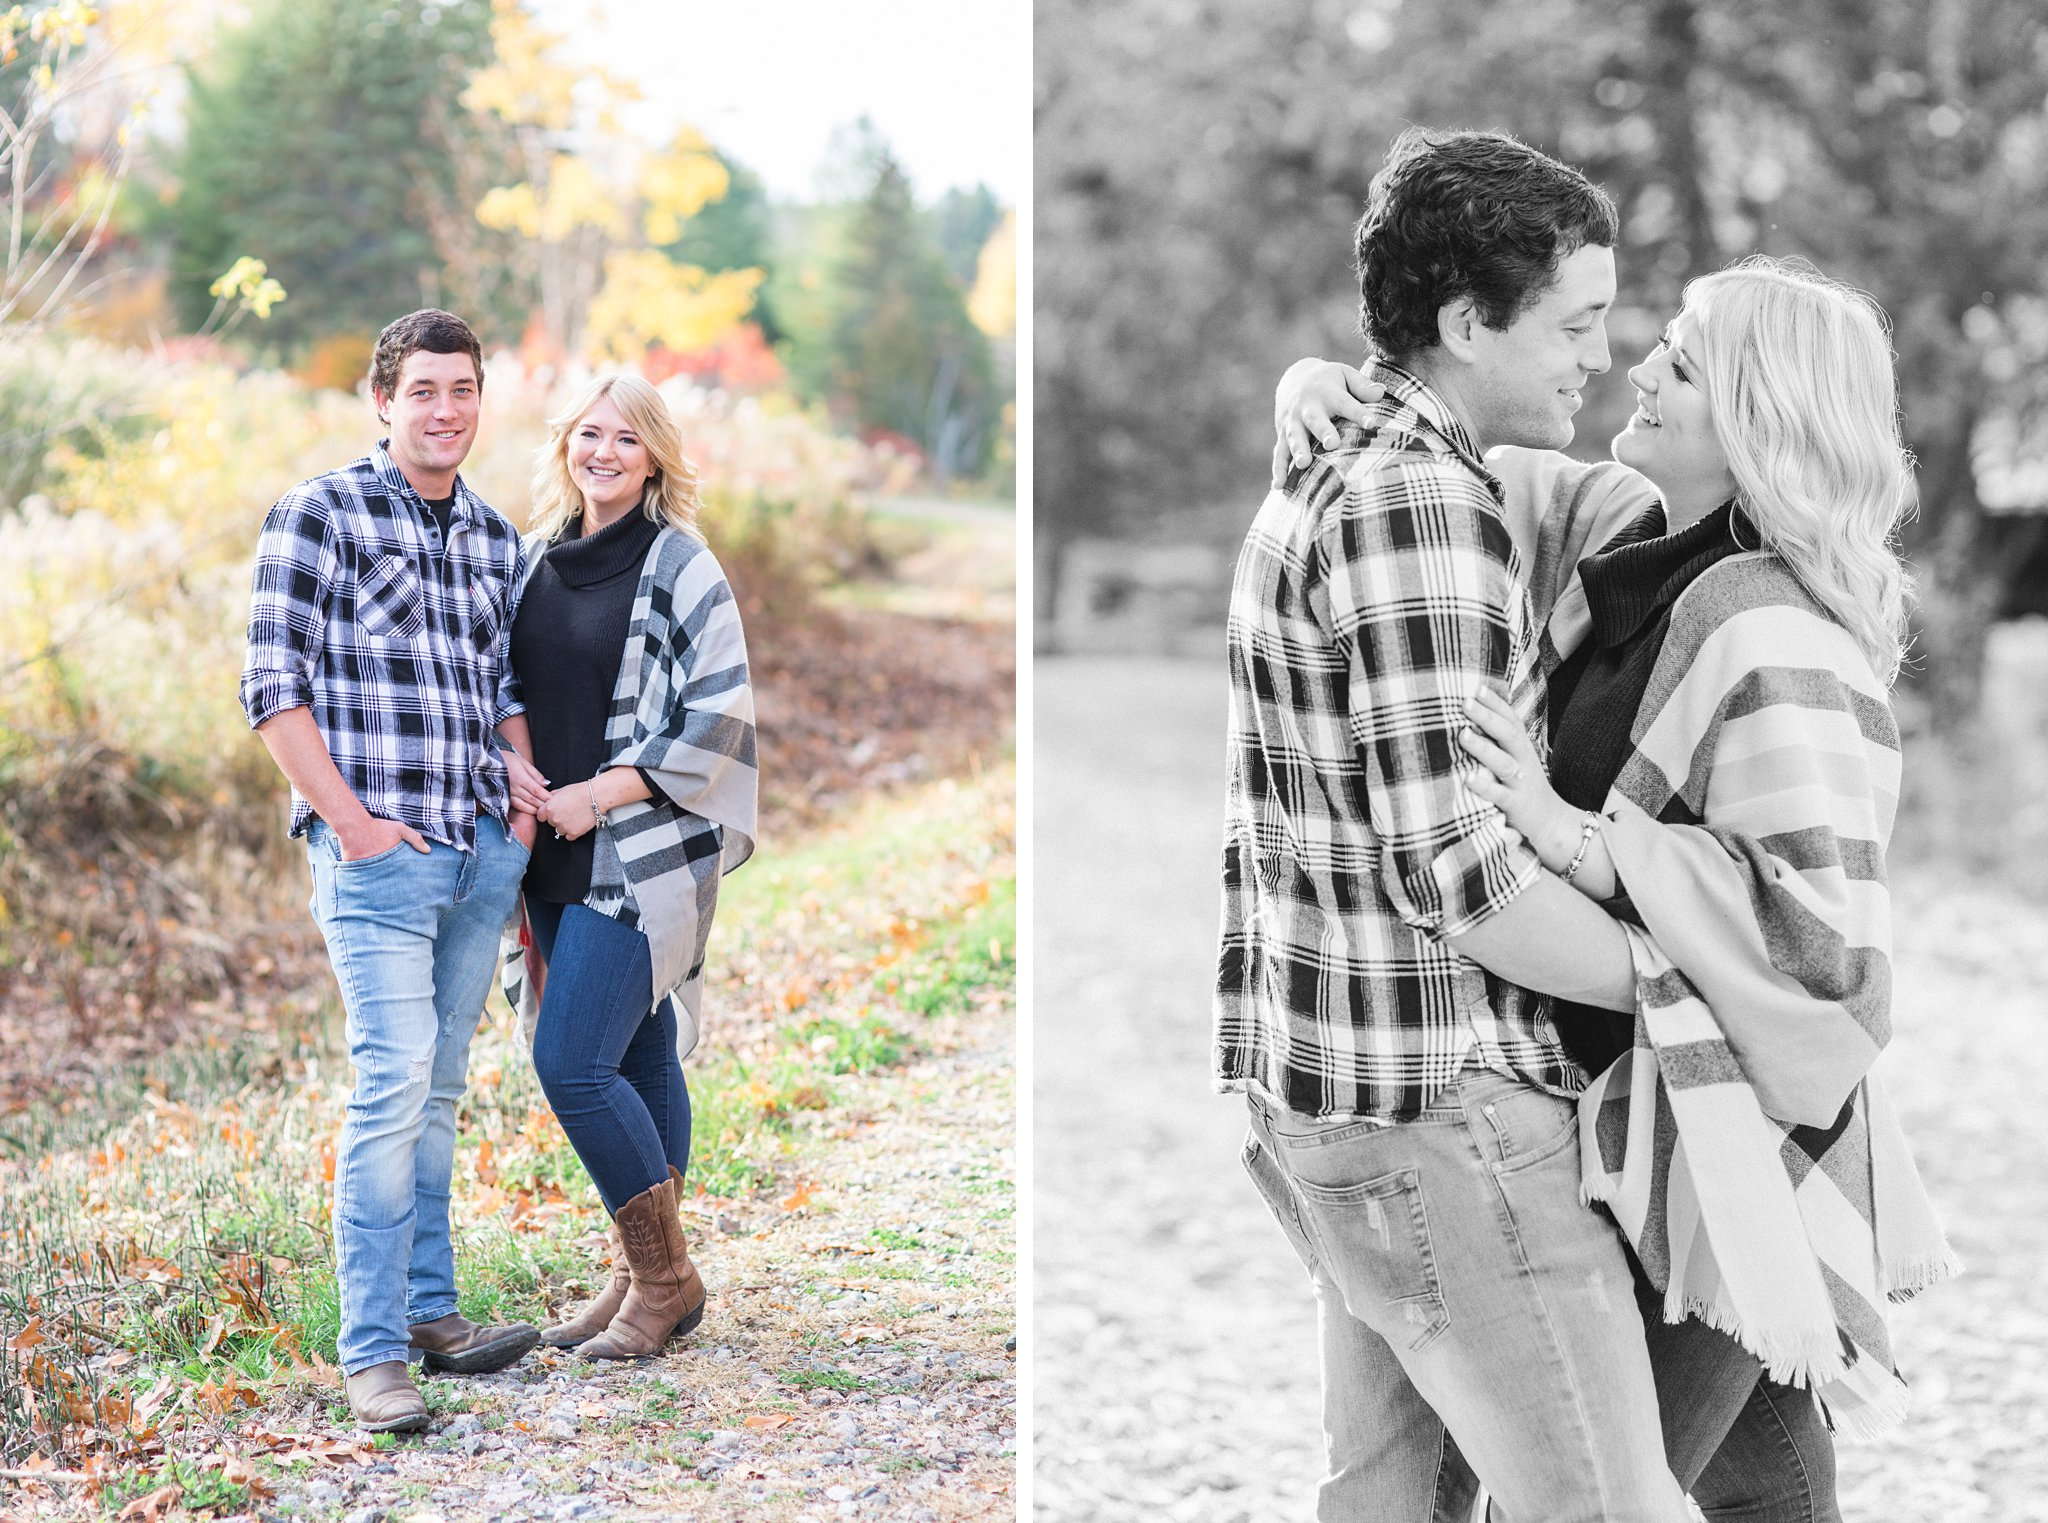 Old Chelsea Engagement Photos by Amy Pinder Photography